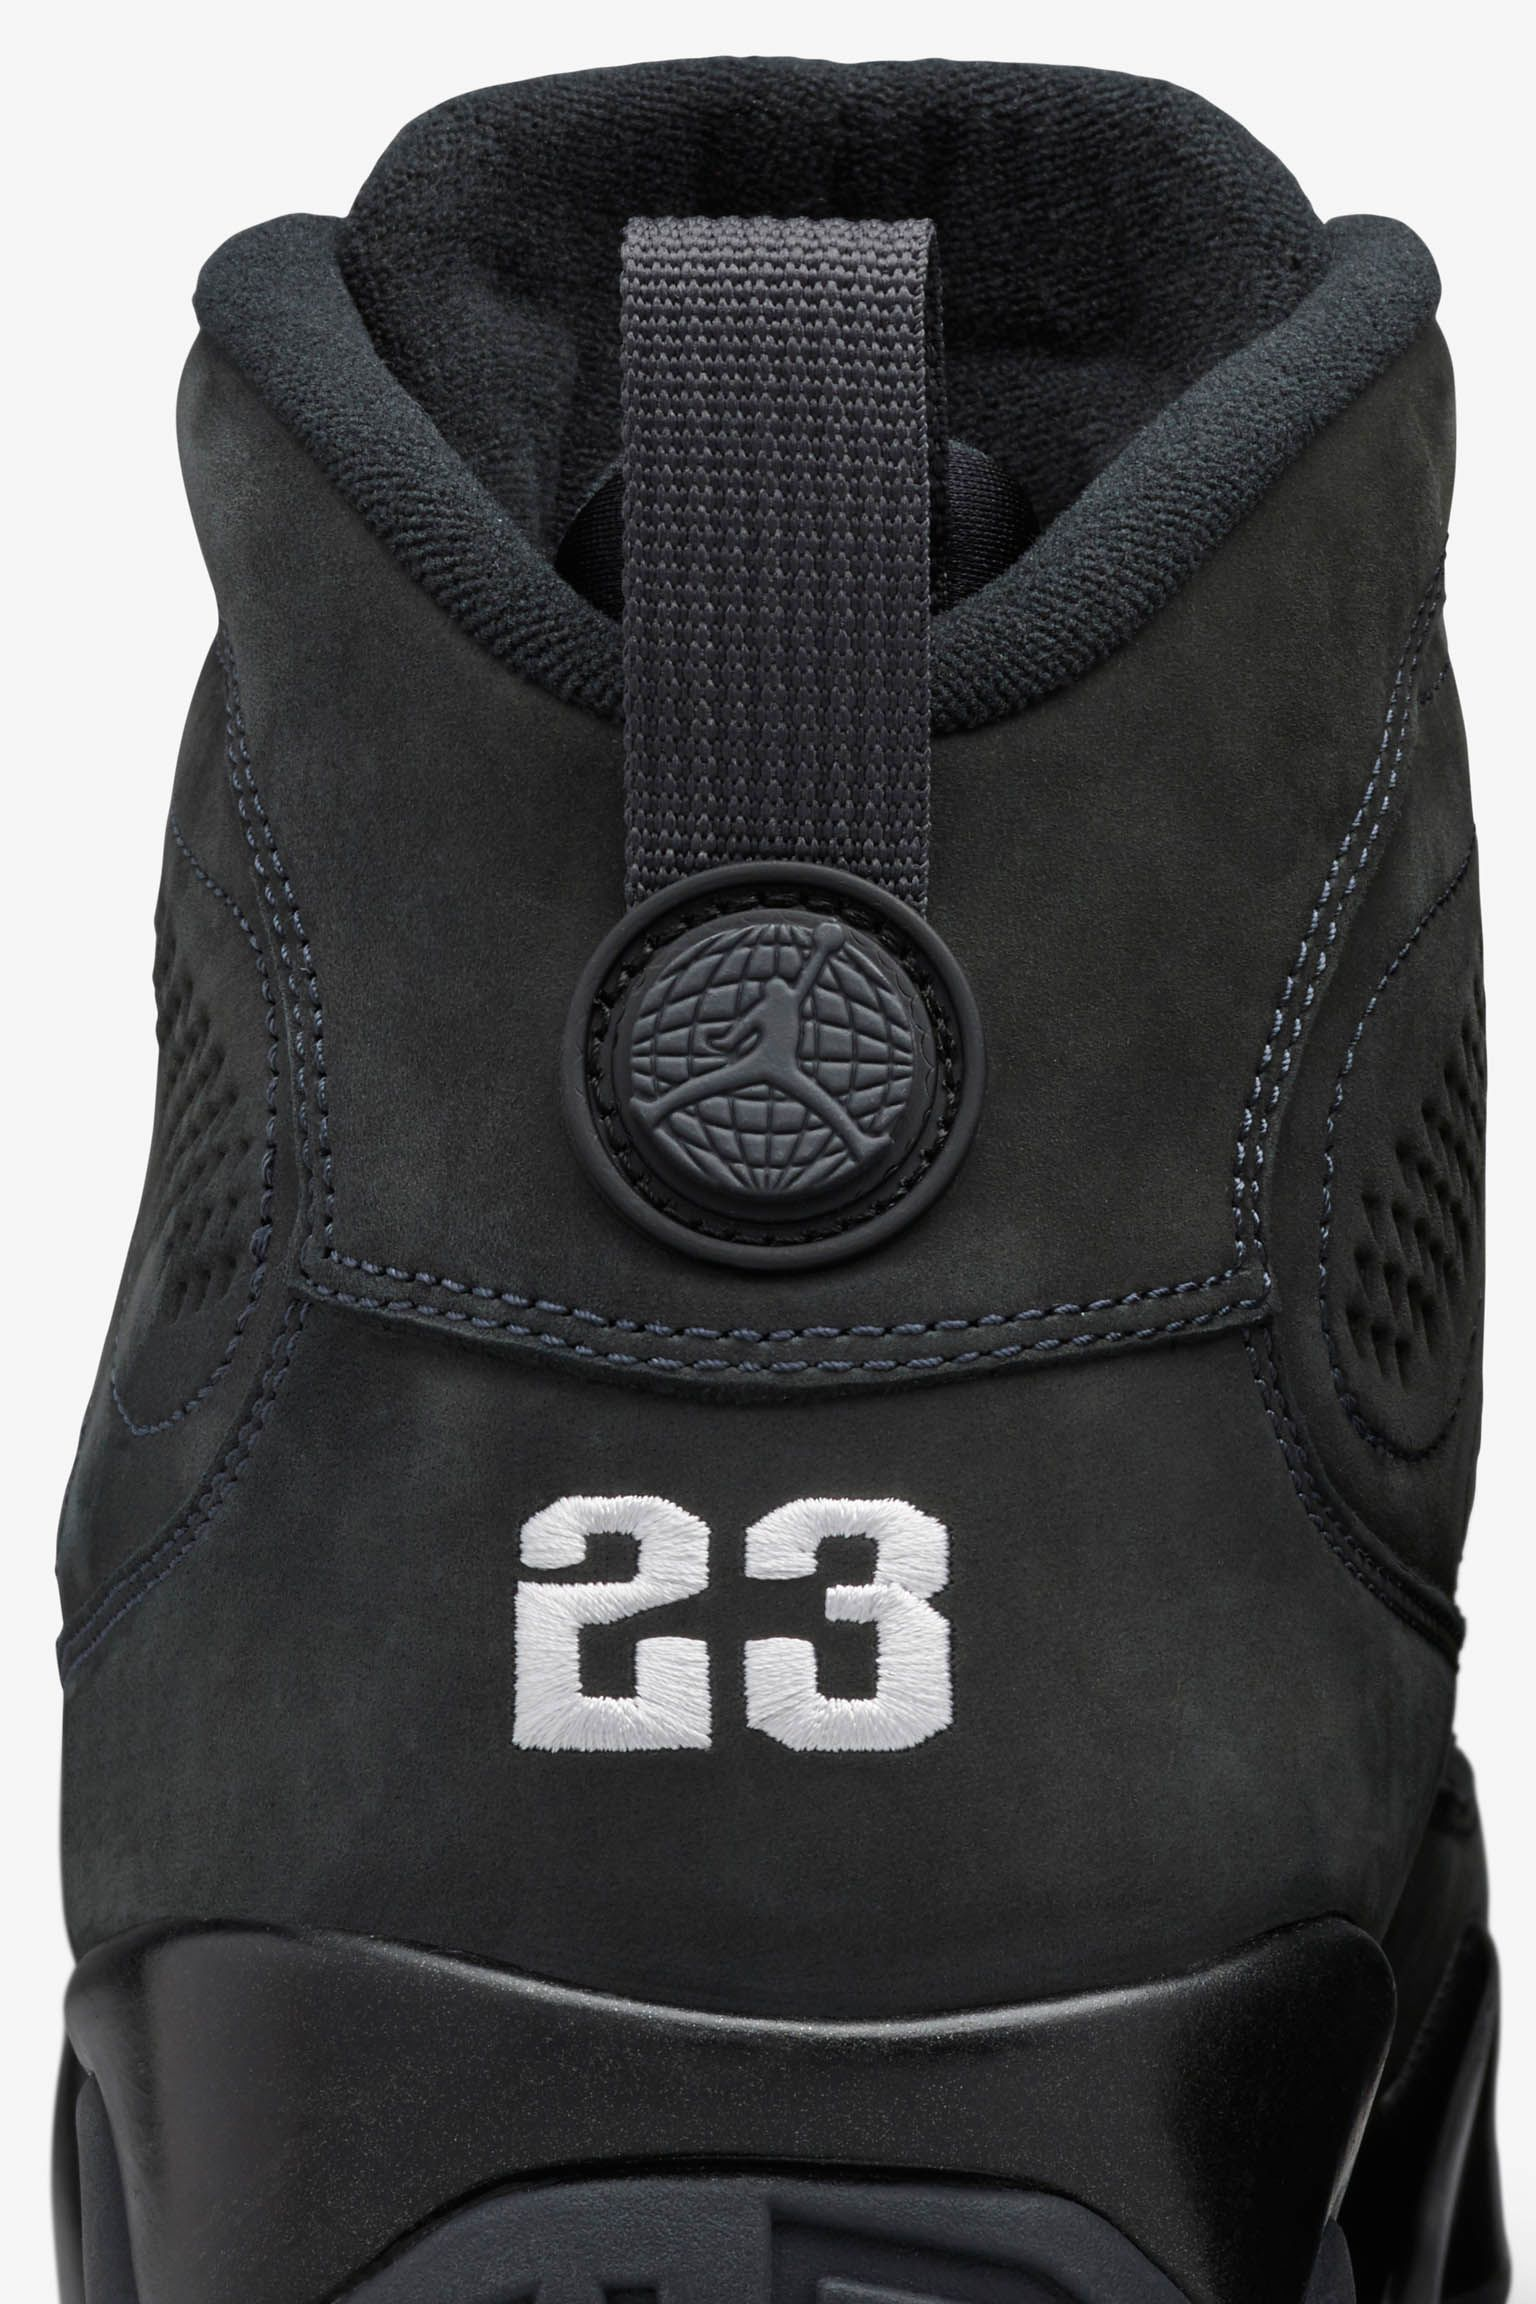 Air Jordan 9 Retro 'Anthracite' Release Date